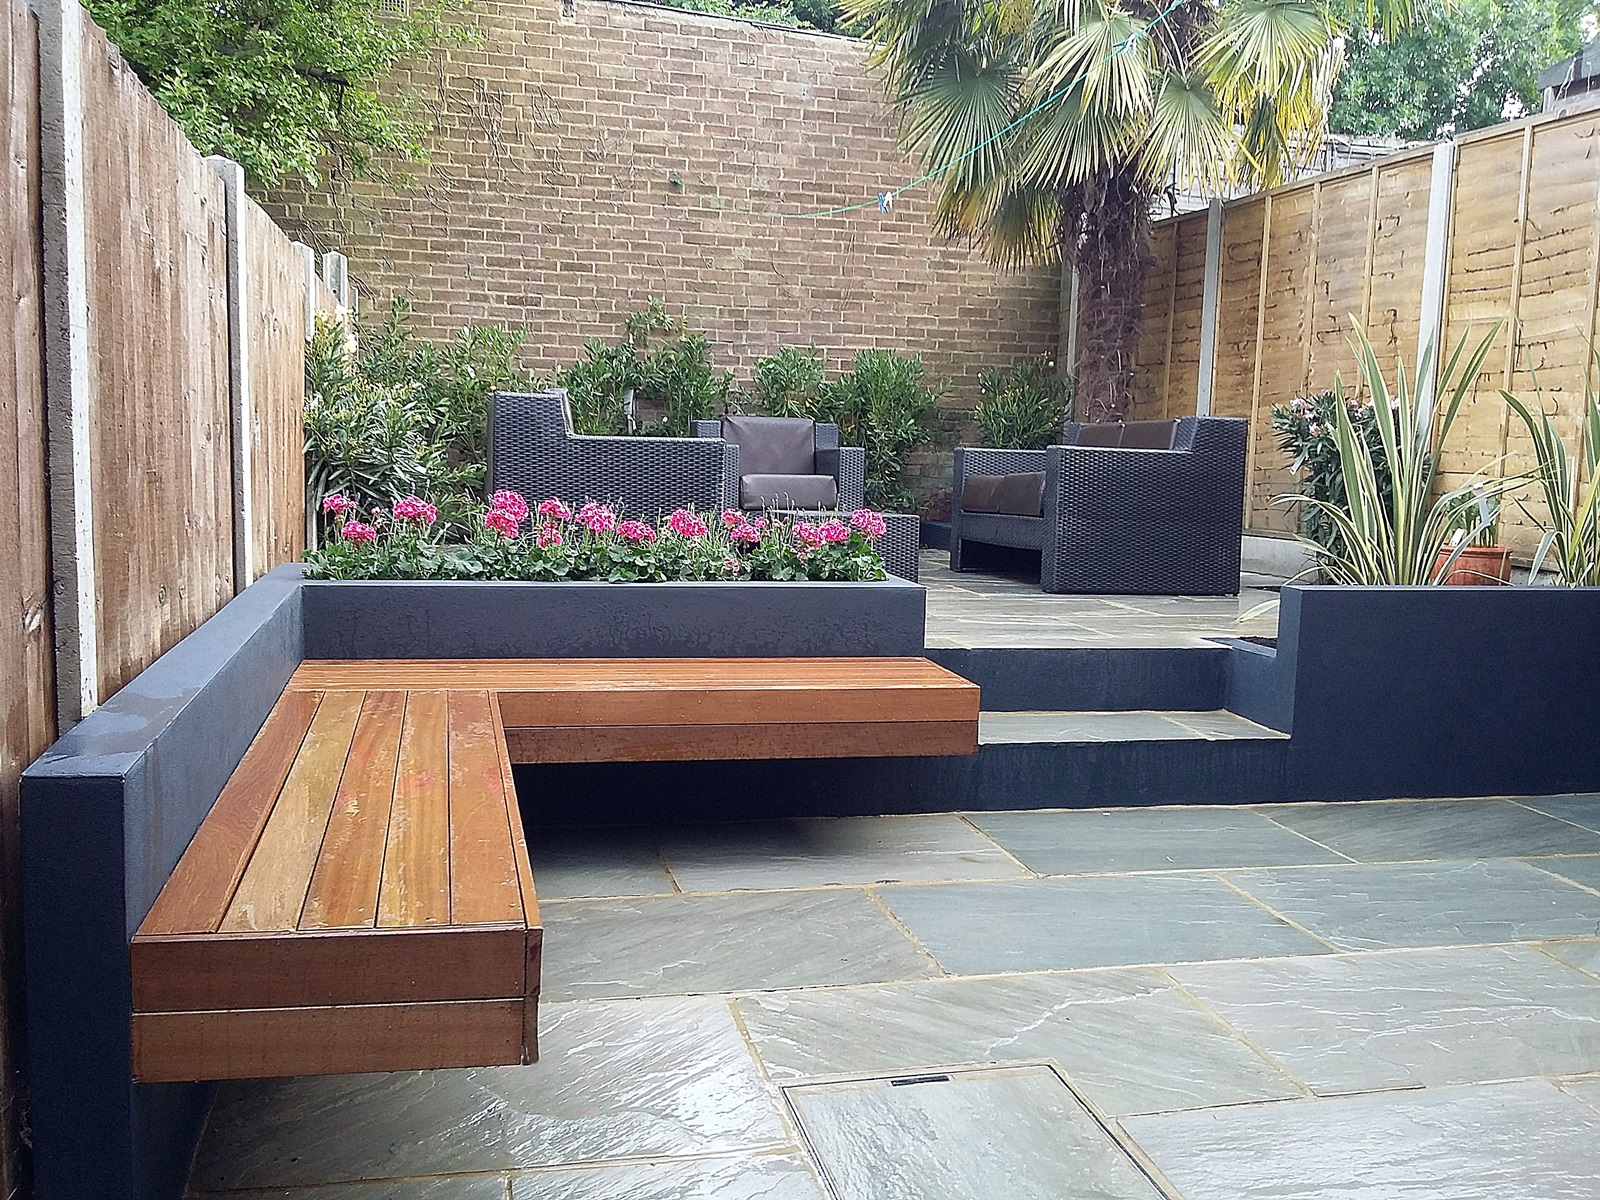 Modern garden design london natural sandstone paving patio for Garden paving designs